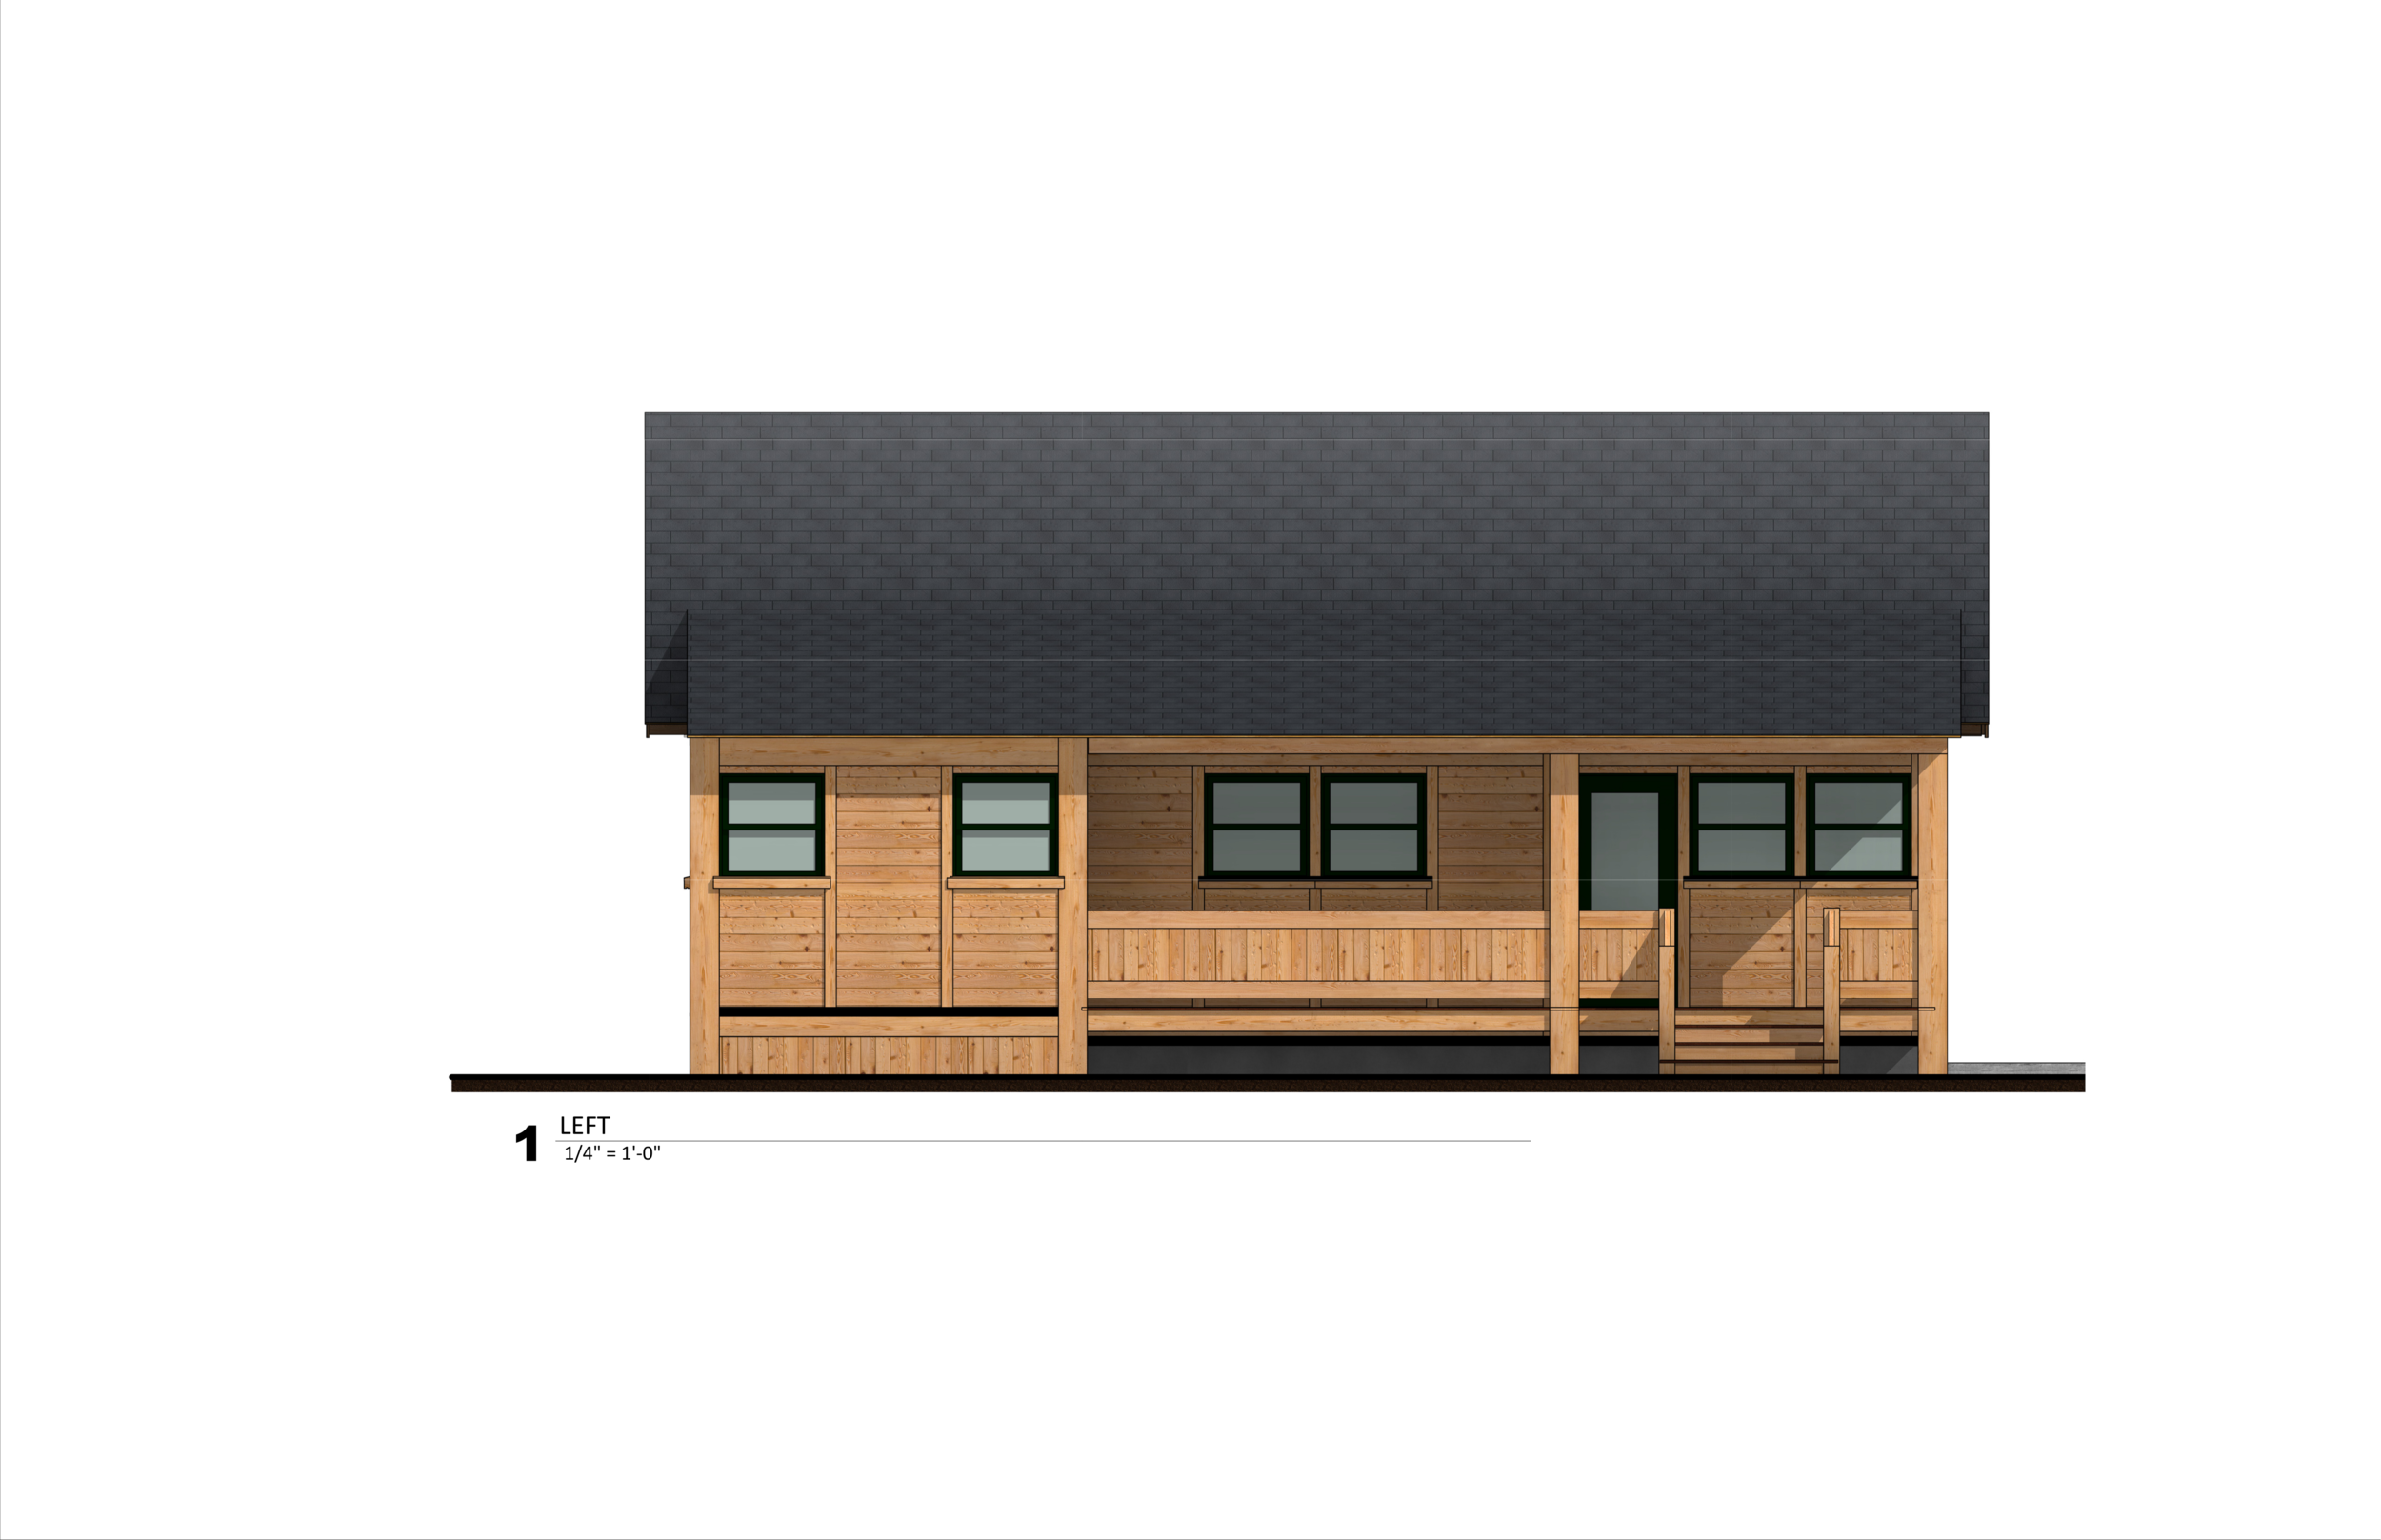 Front view elevation